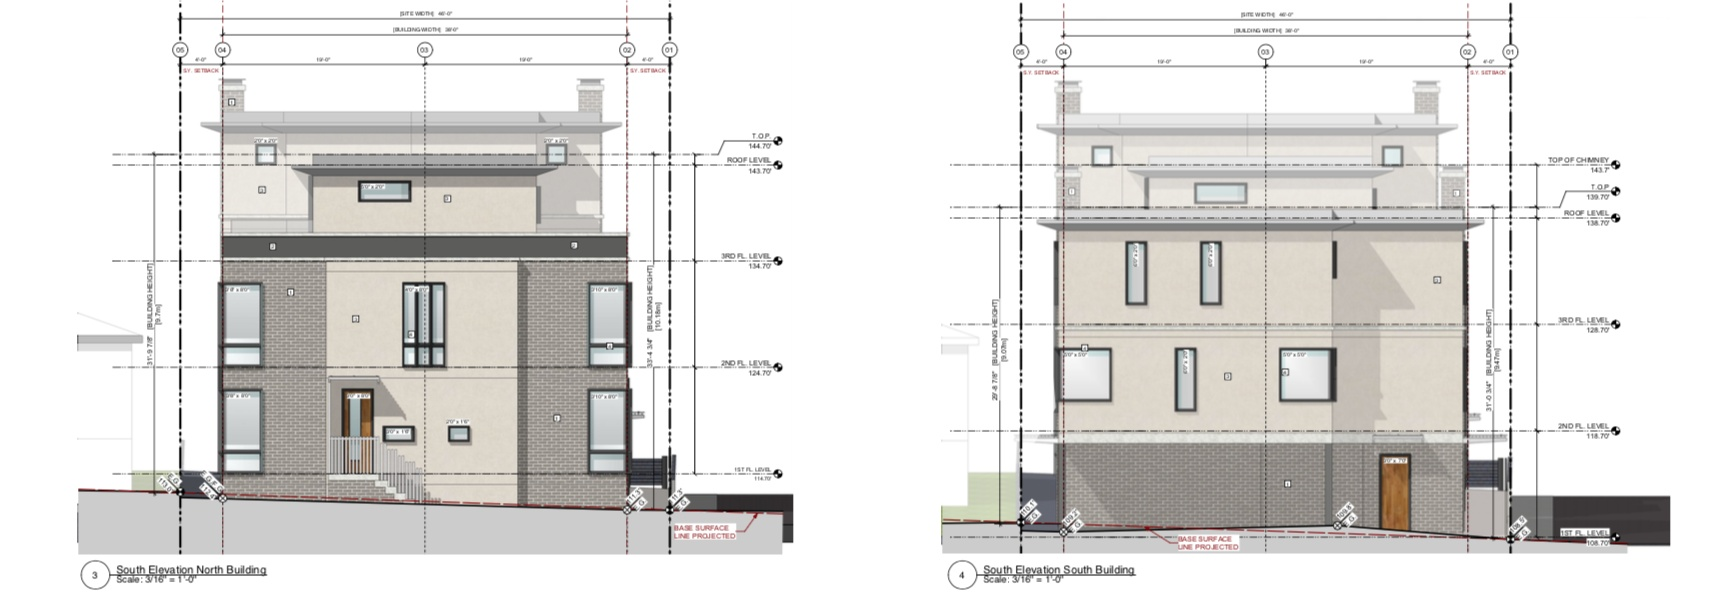 502 W 61st Ave_ElevationSouth